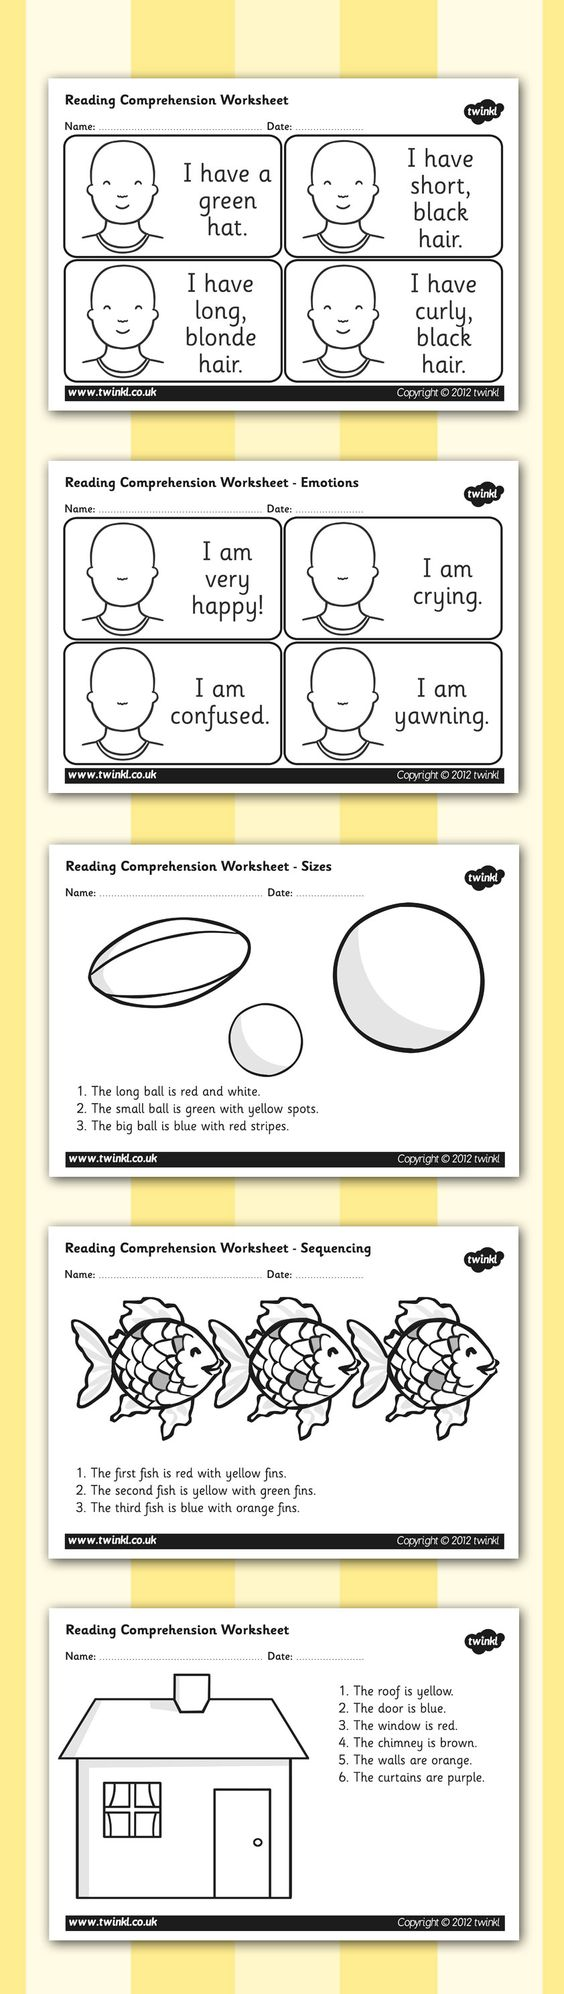 Worksheet Free Reading Comprehension Ks2 Worksheets Printable twinkl resources reading comprehension worksheets higher ability printable for primary